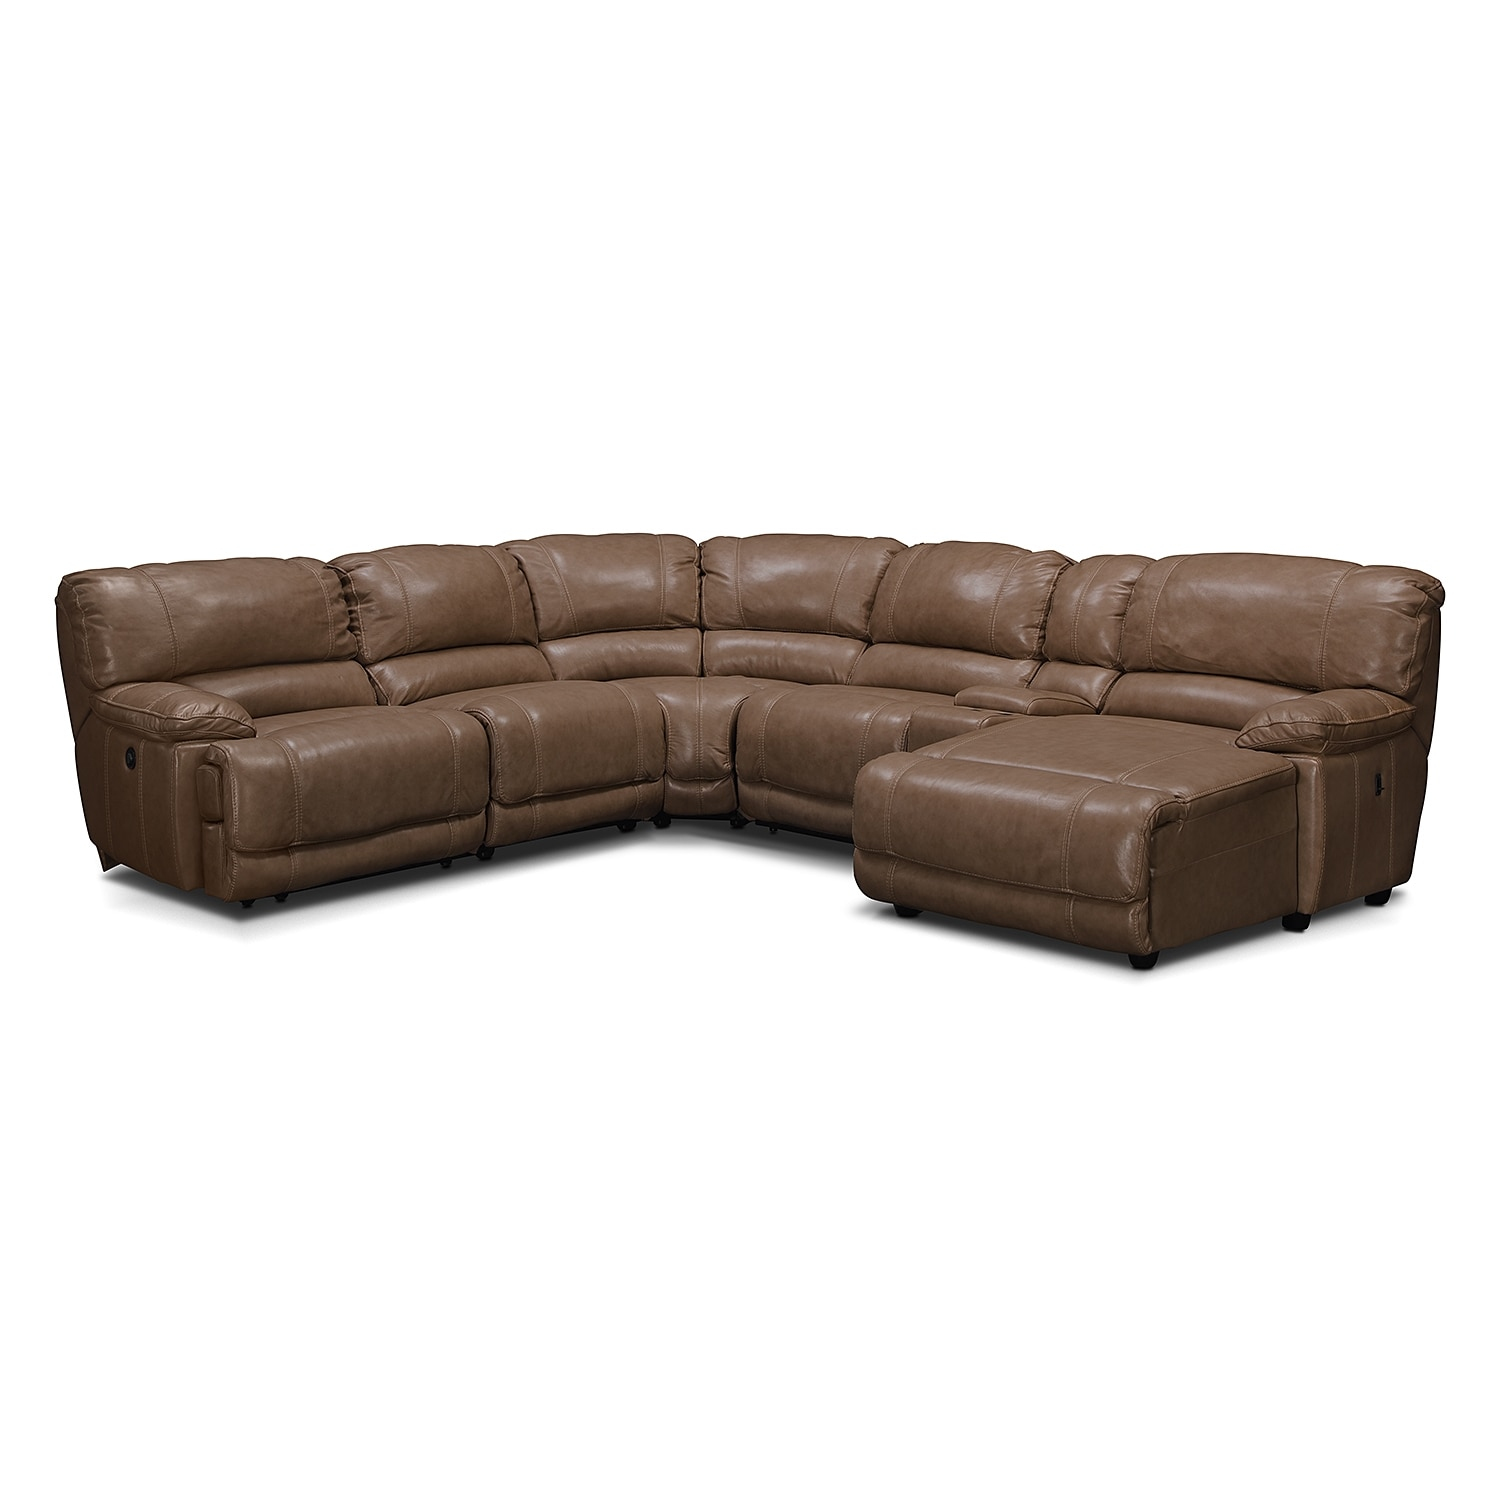 Living Room Furniture - St. Malo II 6 Pc. Power Reclining Sectional